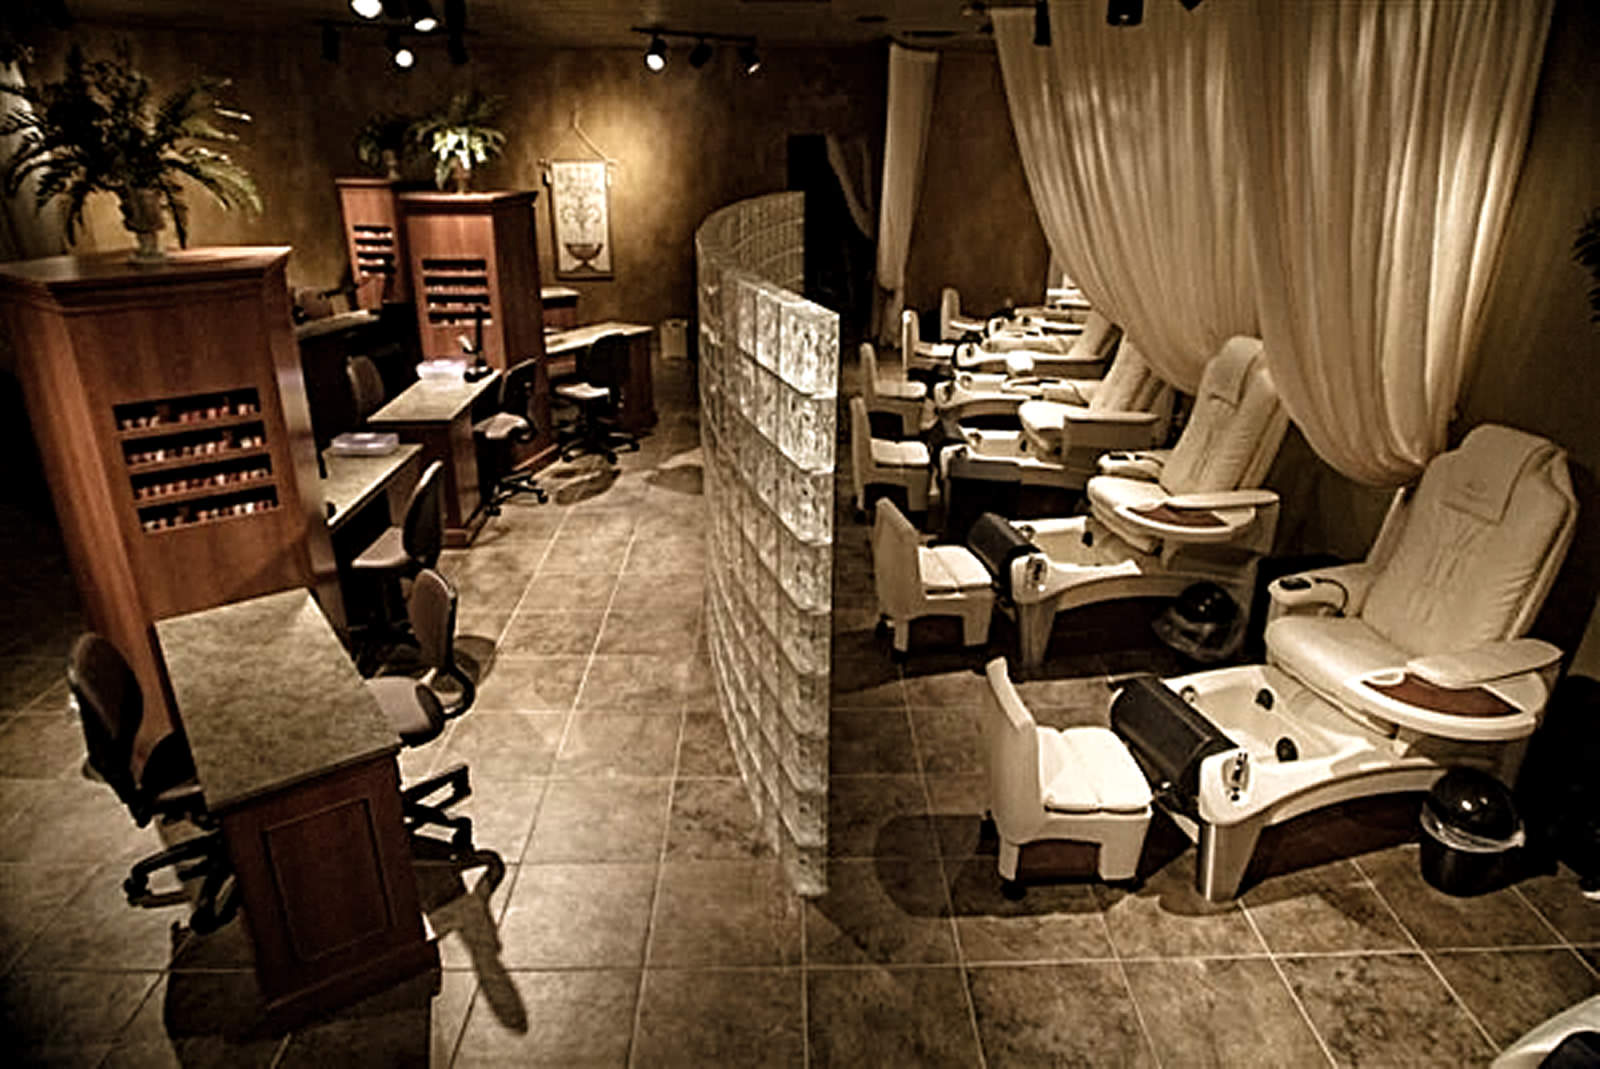 Gould's-Day-Spa-and-Salon-of-Collierville-Tennessee---Interior-Construction.jpg